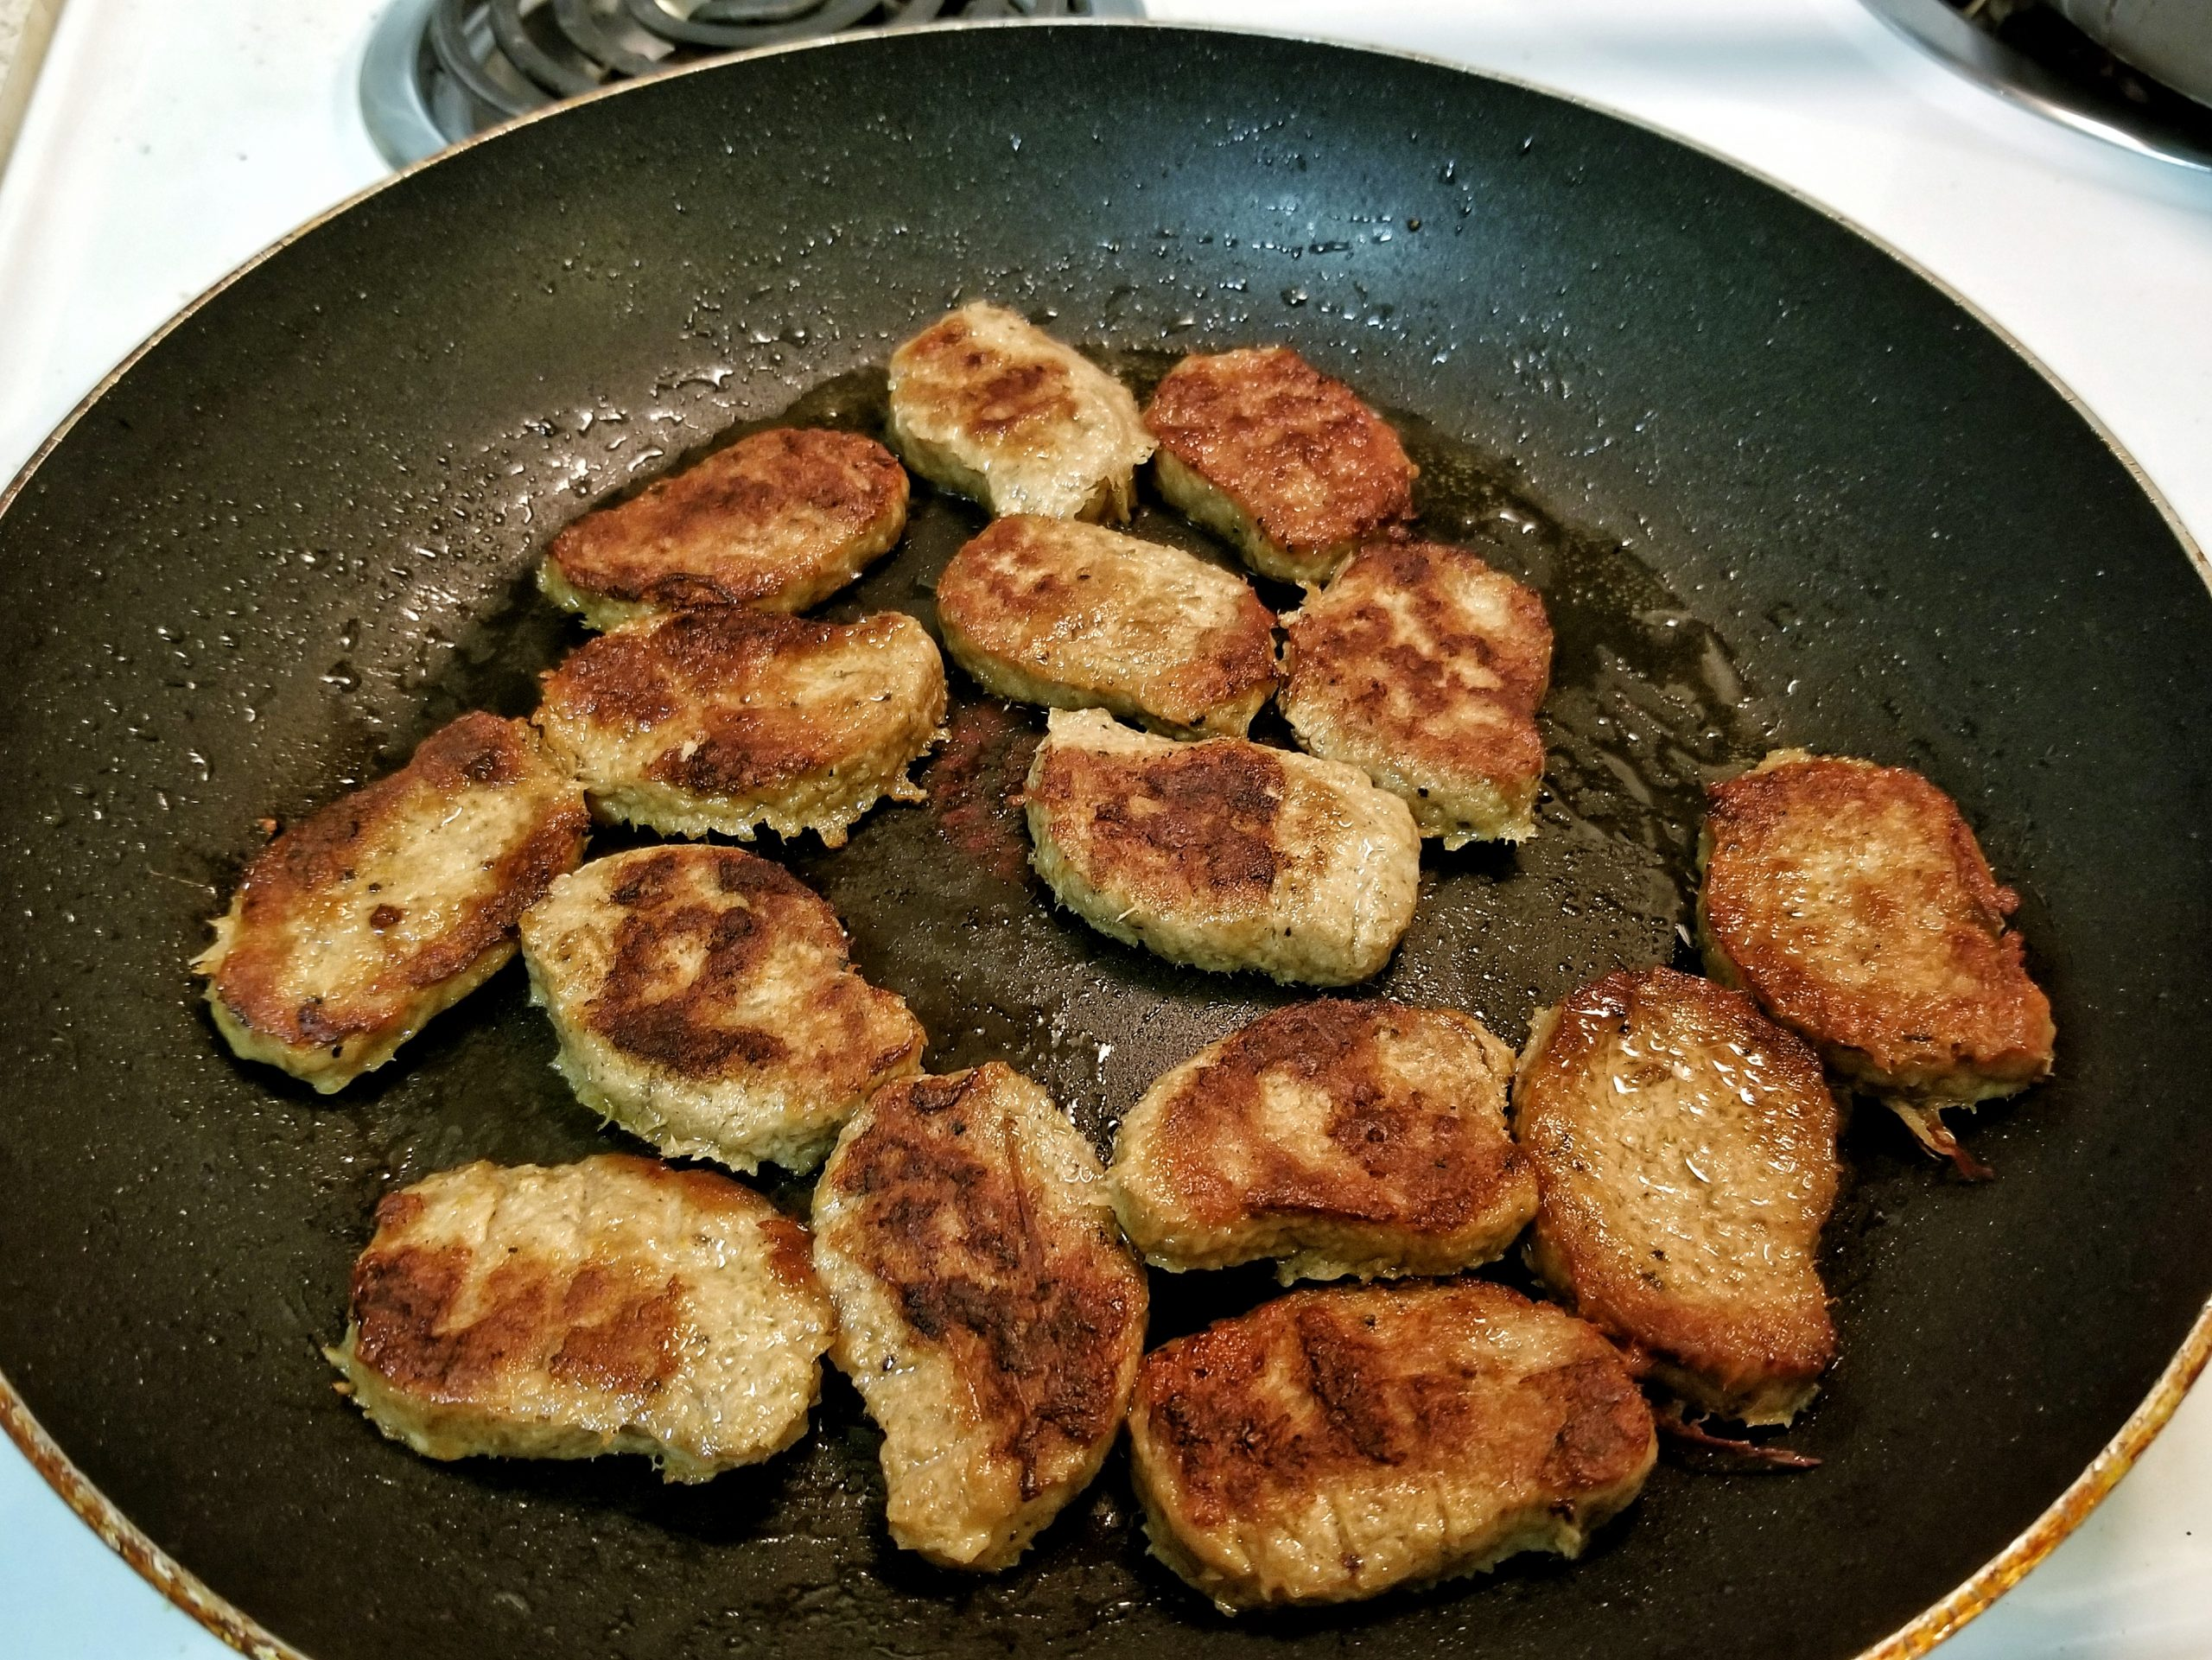 Mock meat nuggets cooking in a large non-stick pan